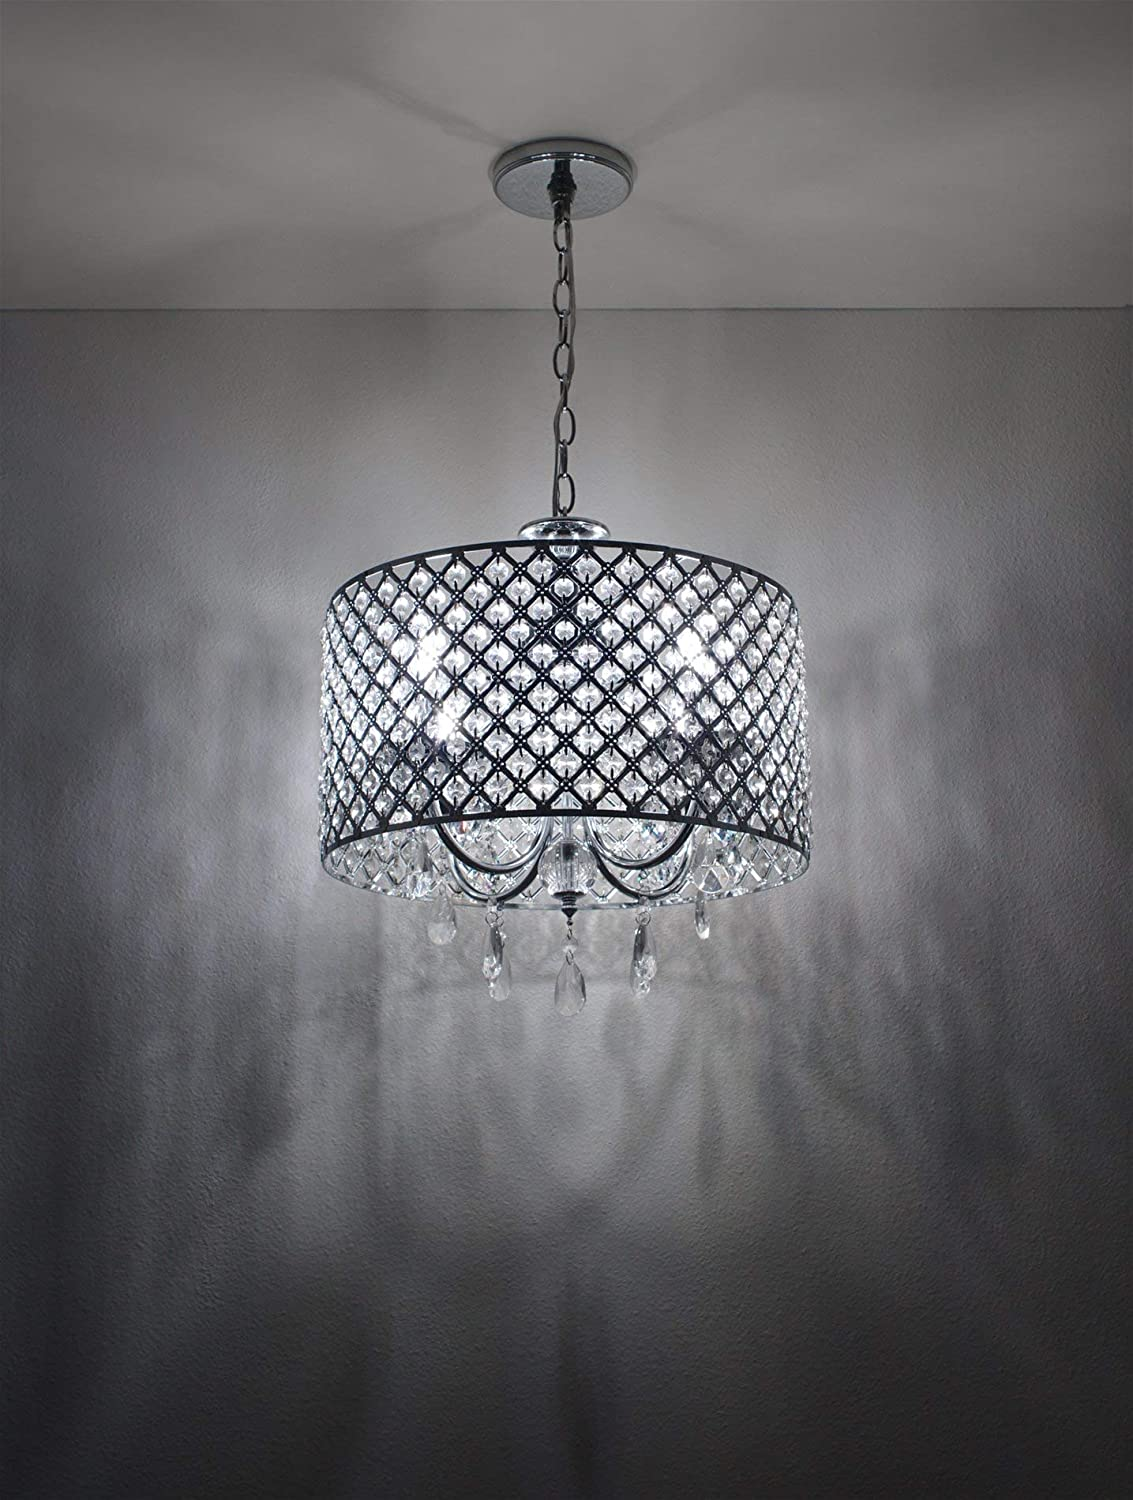 Black Finish Beaded Drum Shade Adjustable Chain Kira Home Briolette 16 Modern Chic 4-Light Crystal Pendant Chandelier Dimmable